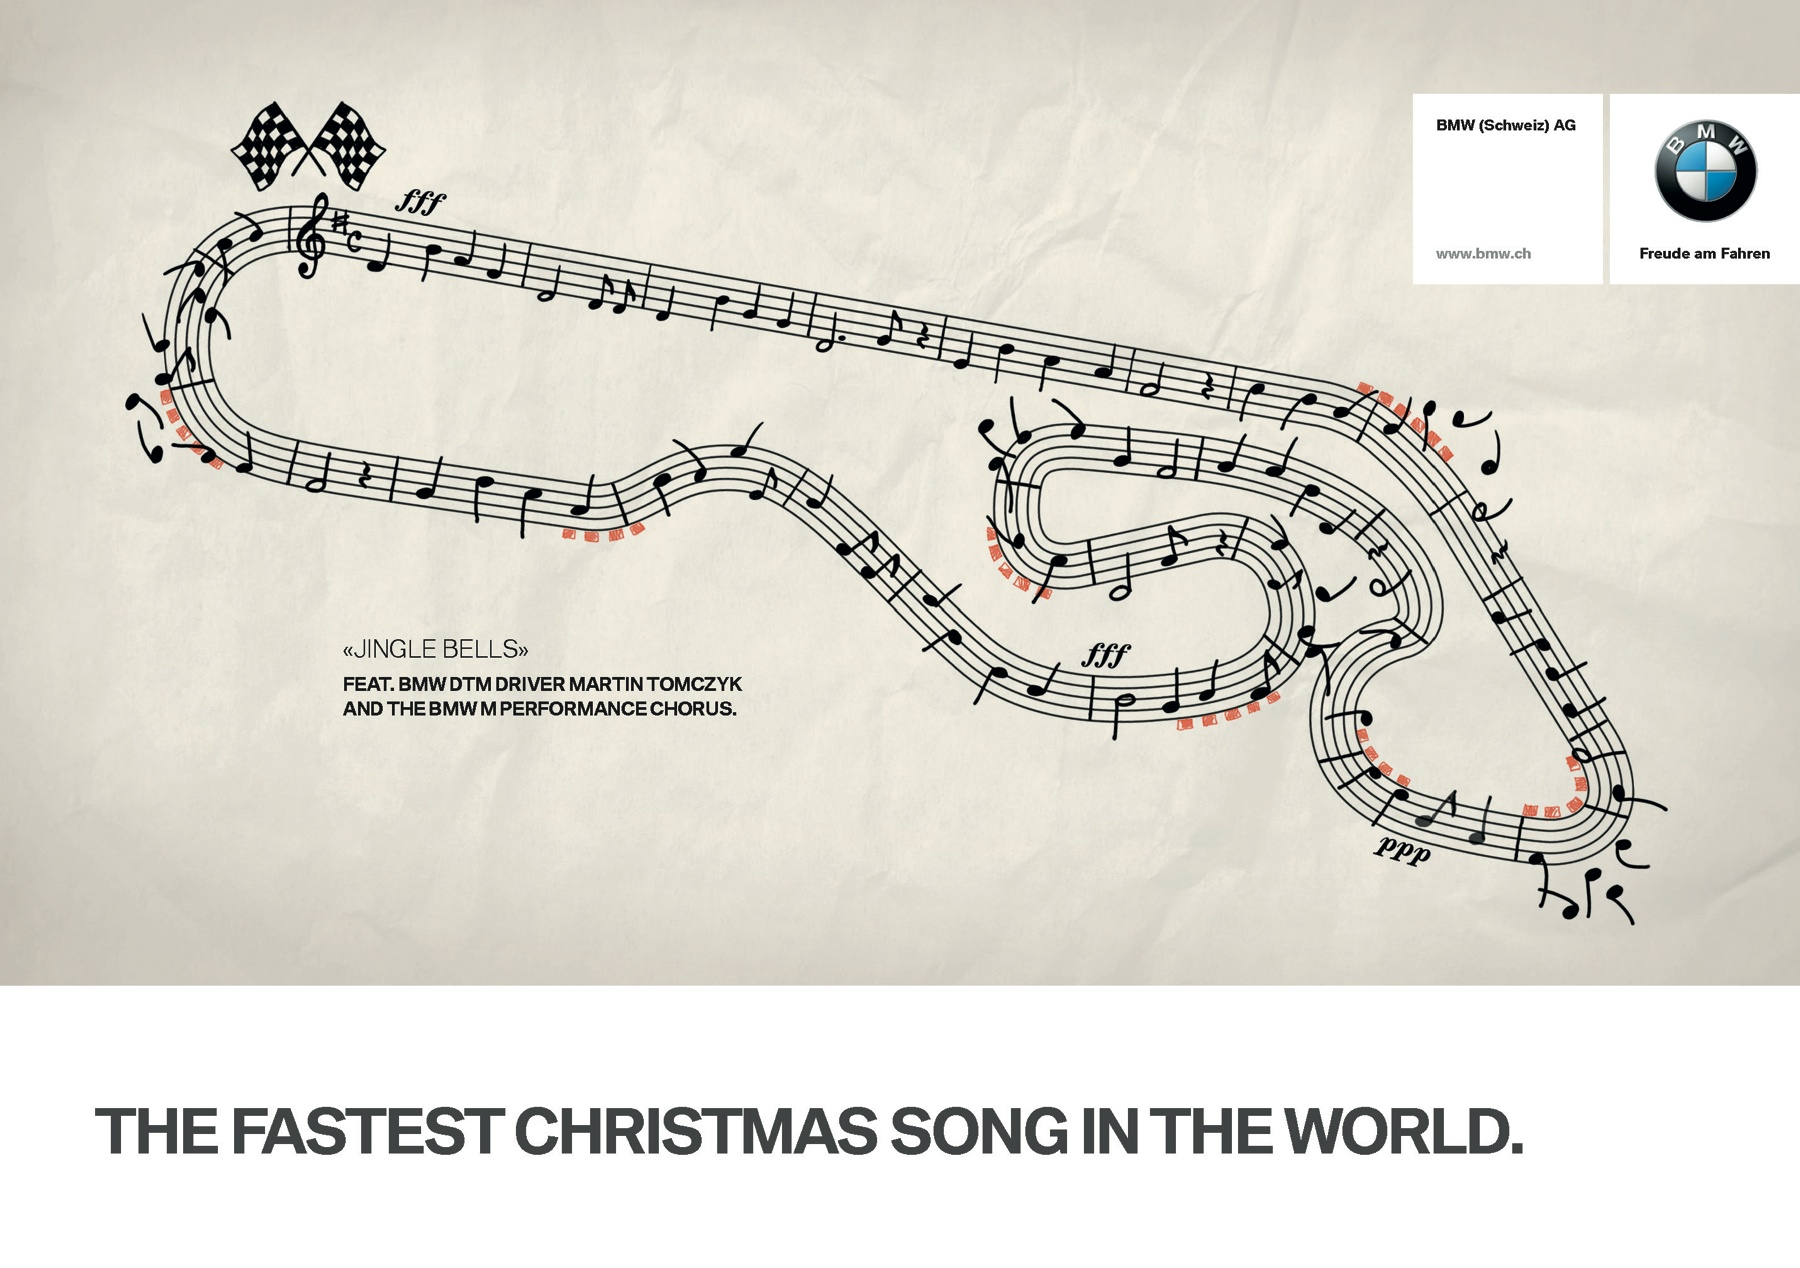 Bmw print advert by fcb the fastest christmas song in the world bmw print ad the fastest christmas song in the world m4hsunfo